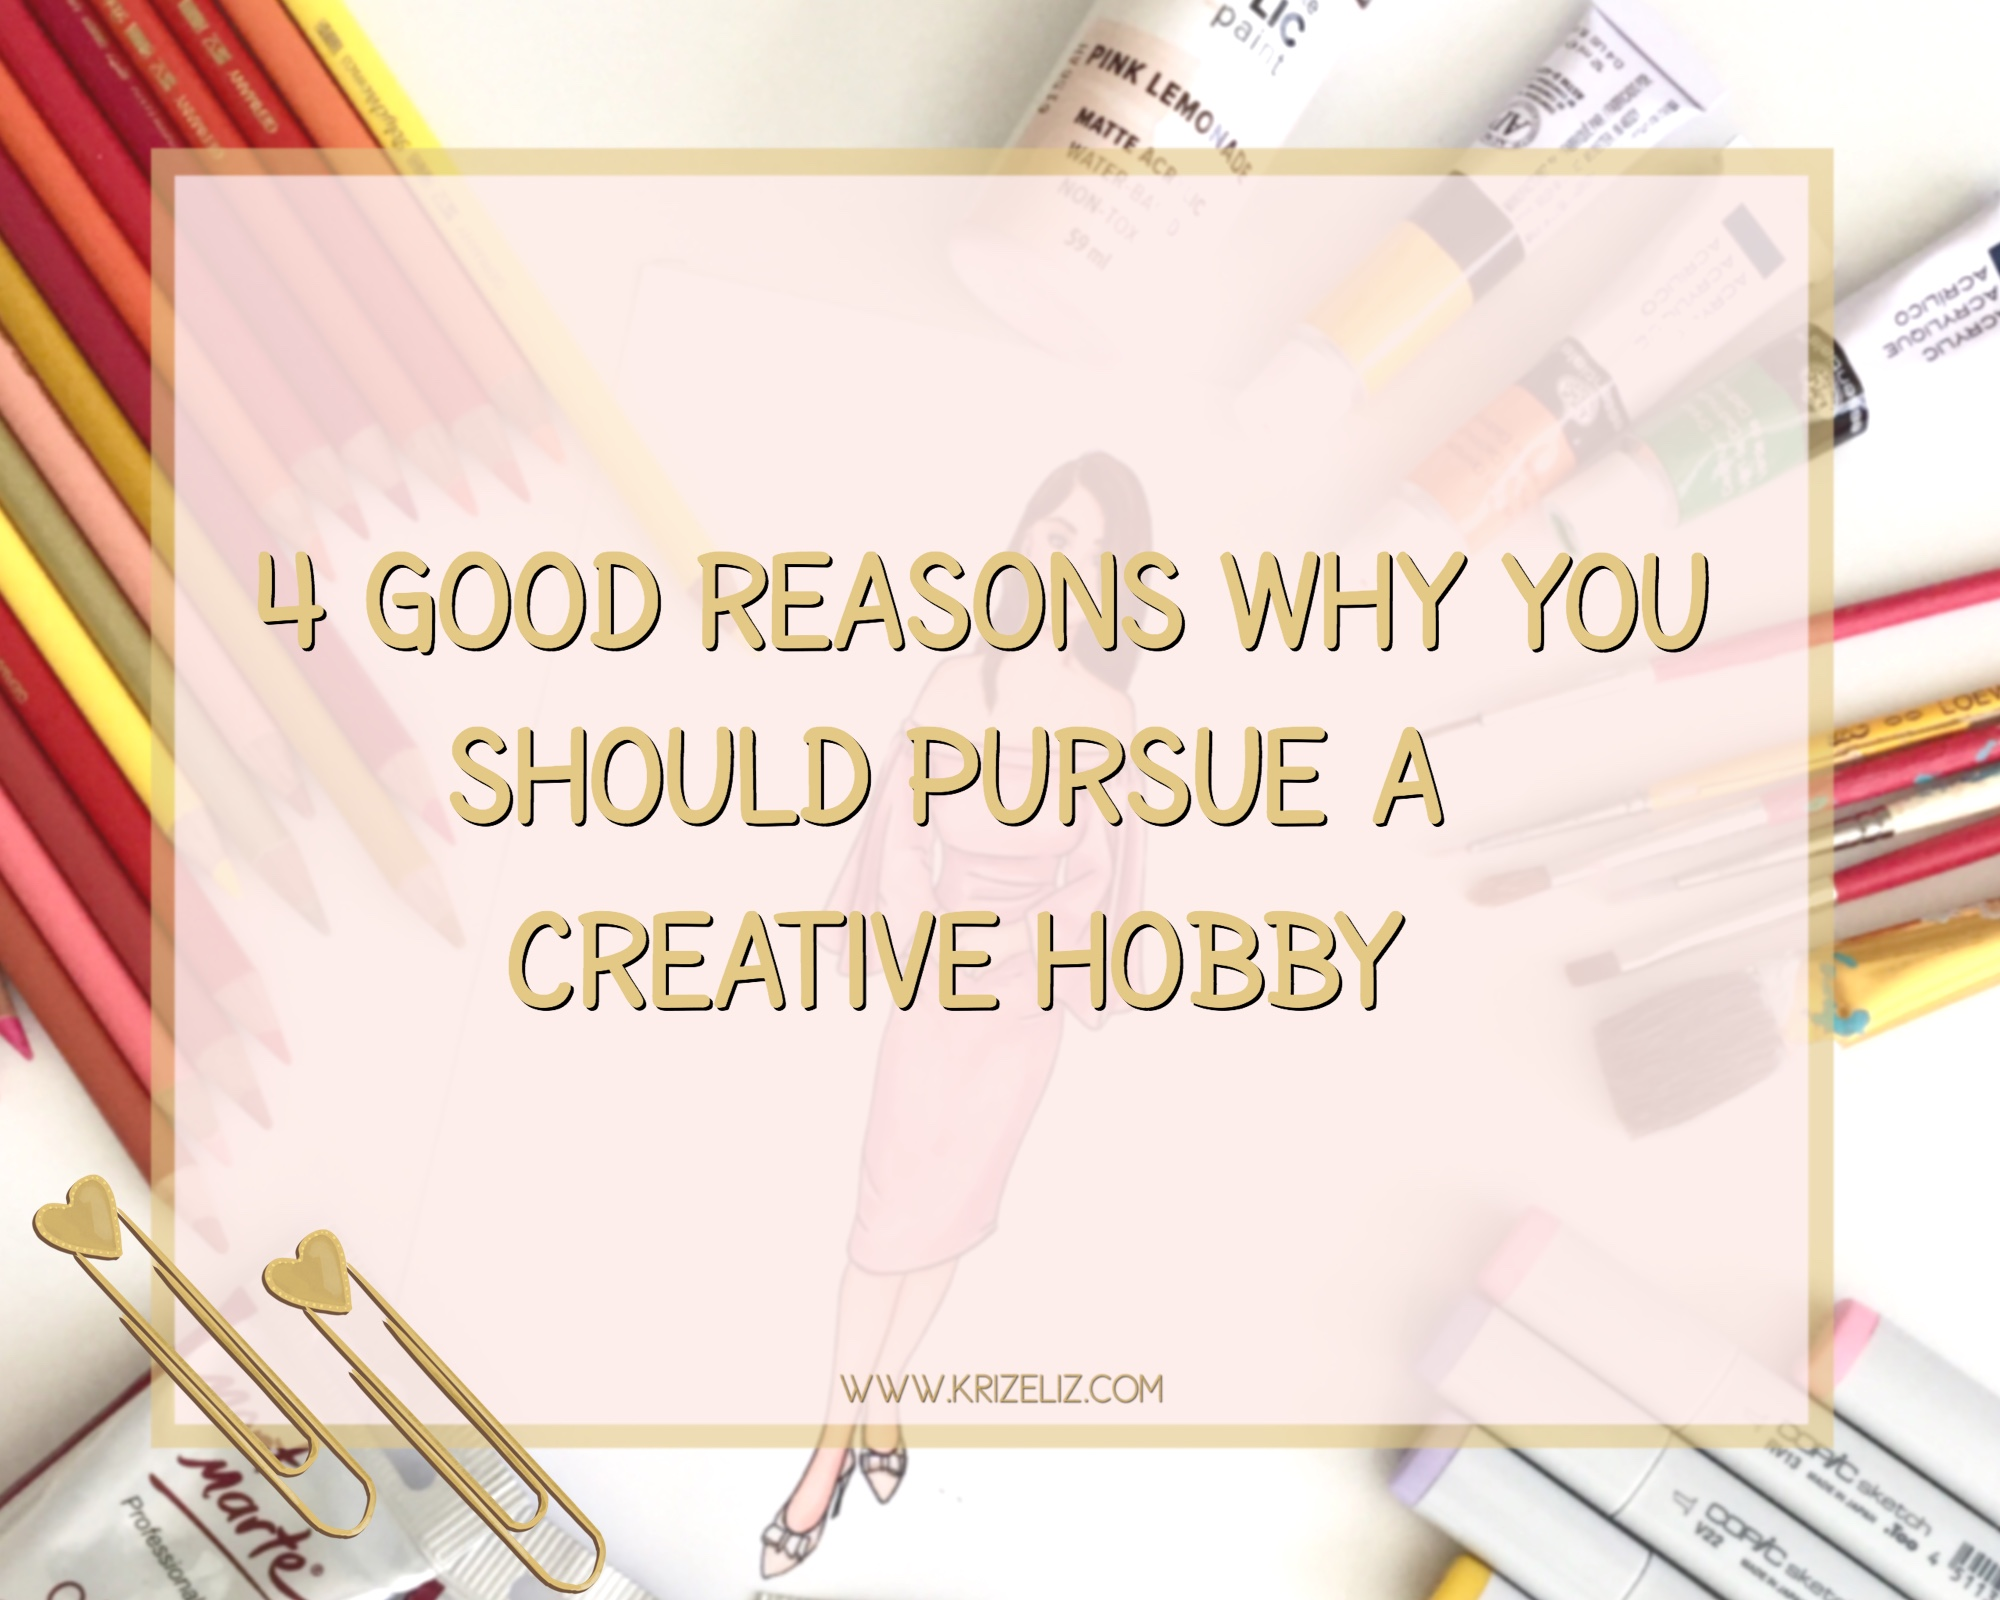 4 Good Reasons you should pursue a Creative Hobby